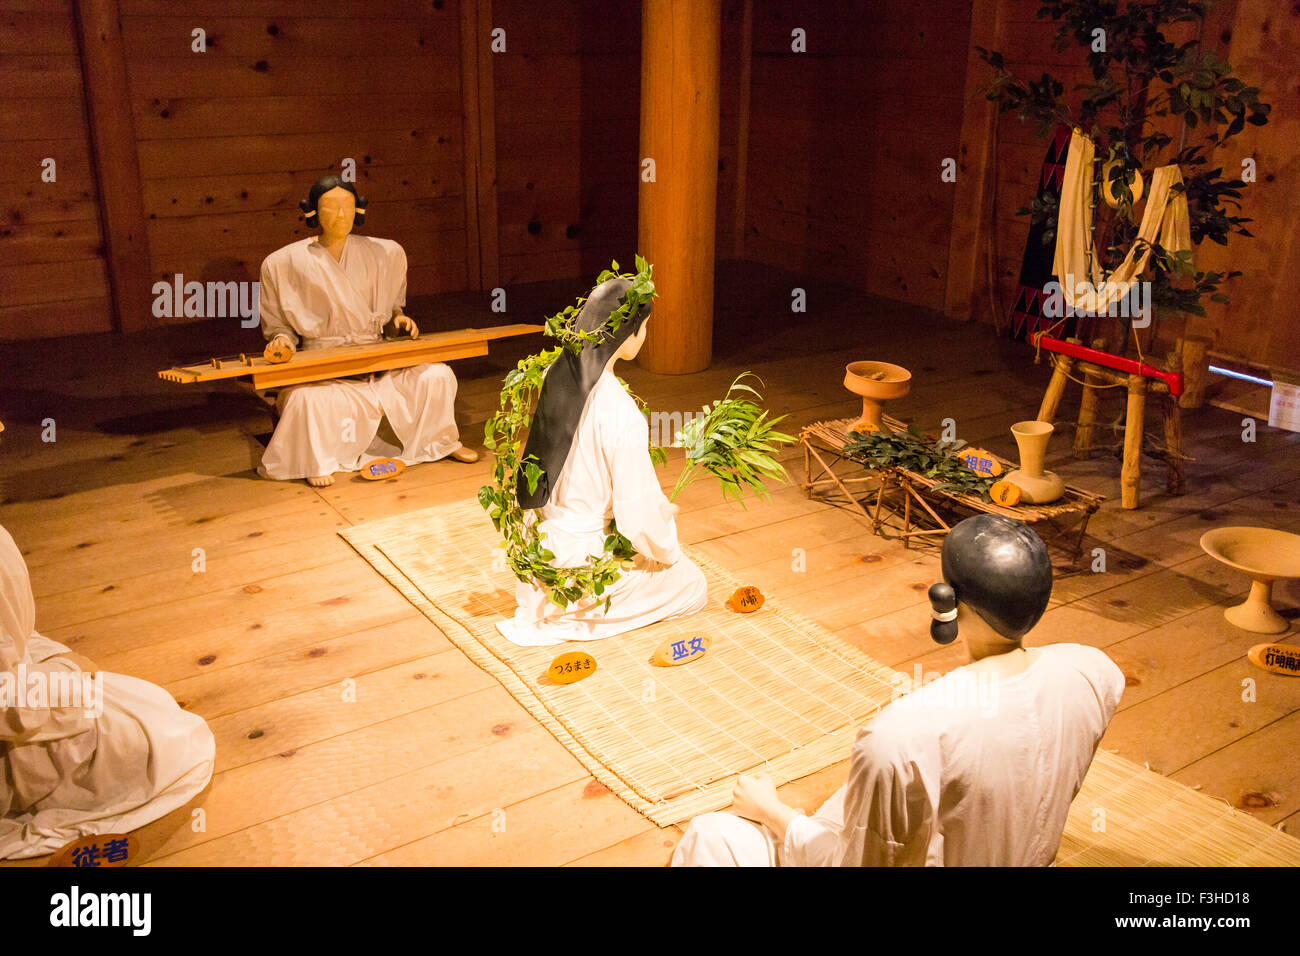 Yoshinogari Park. Yayoi settlement. Kitanaikaku, ceremonial Hall, ritual with girl decked with leaves in fertility - Stock Image